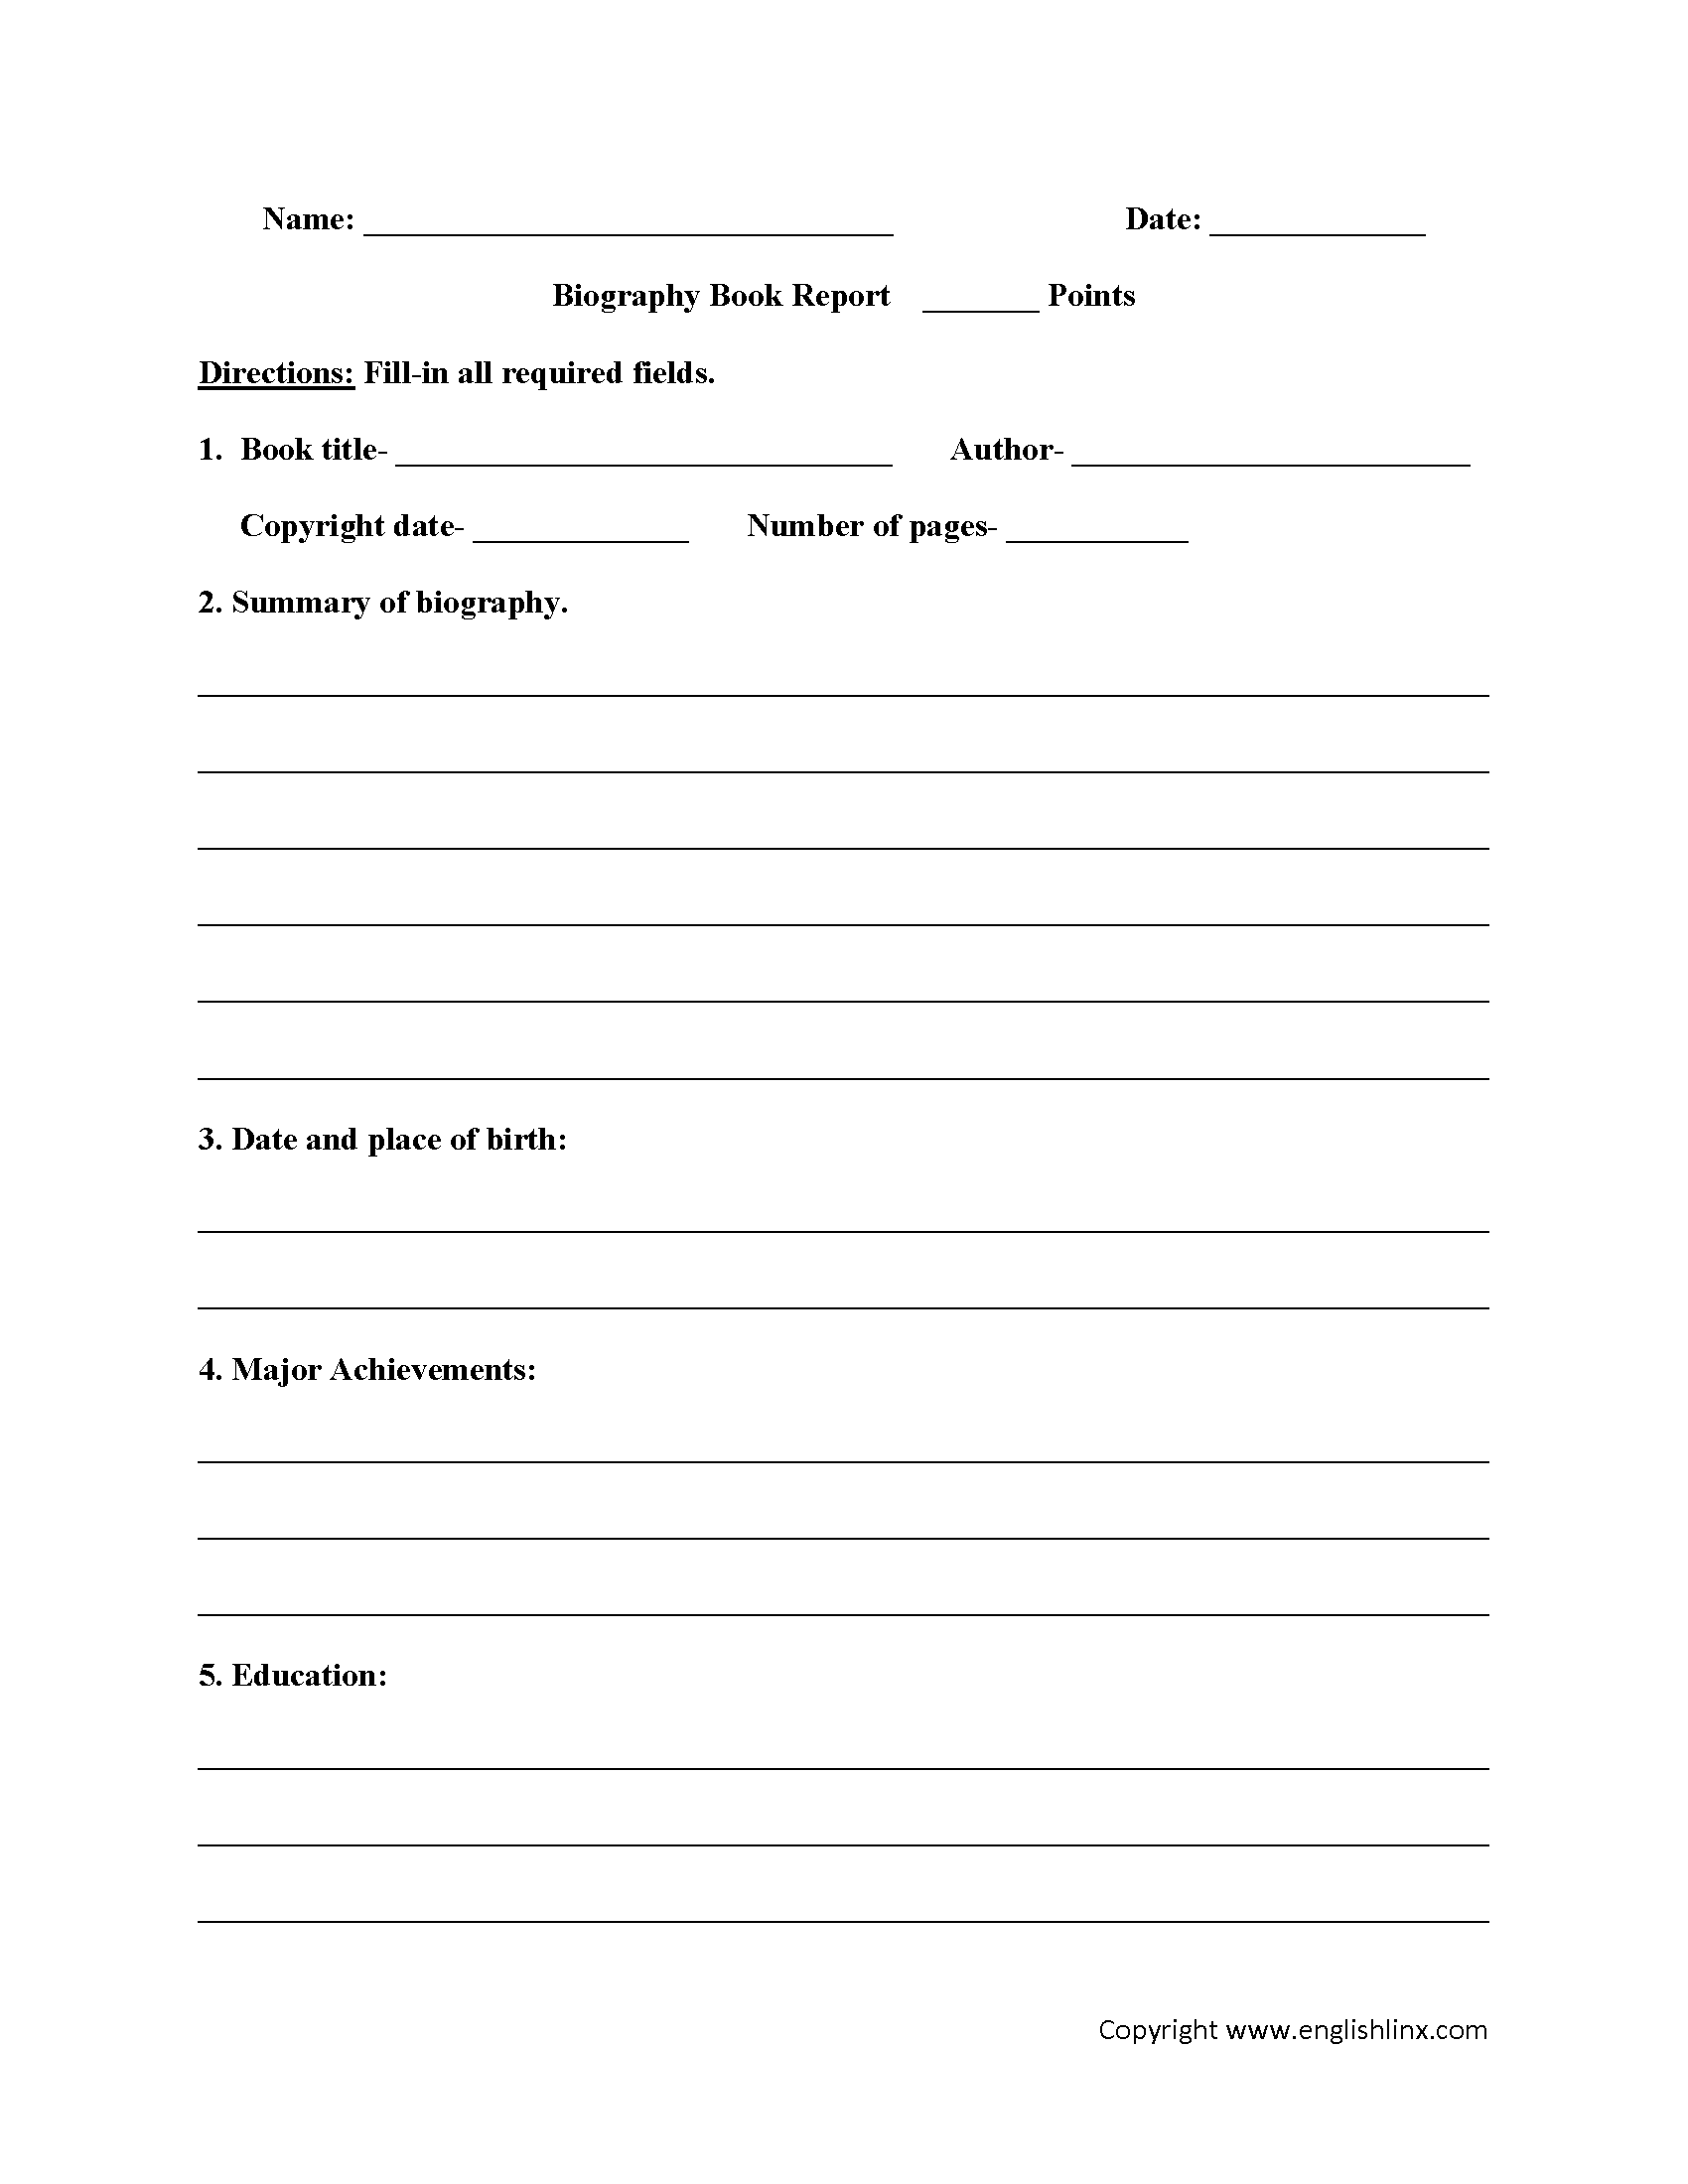 worksheet Grammar Worksheets 7th Grade biography book report worksheets homework pinterest worksheets